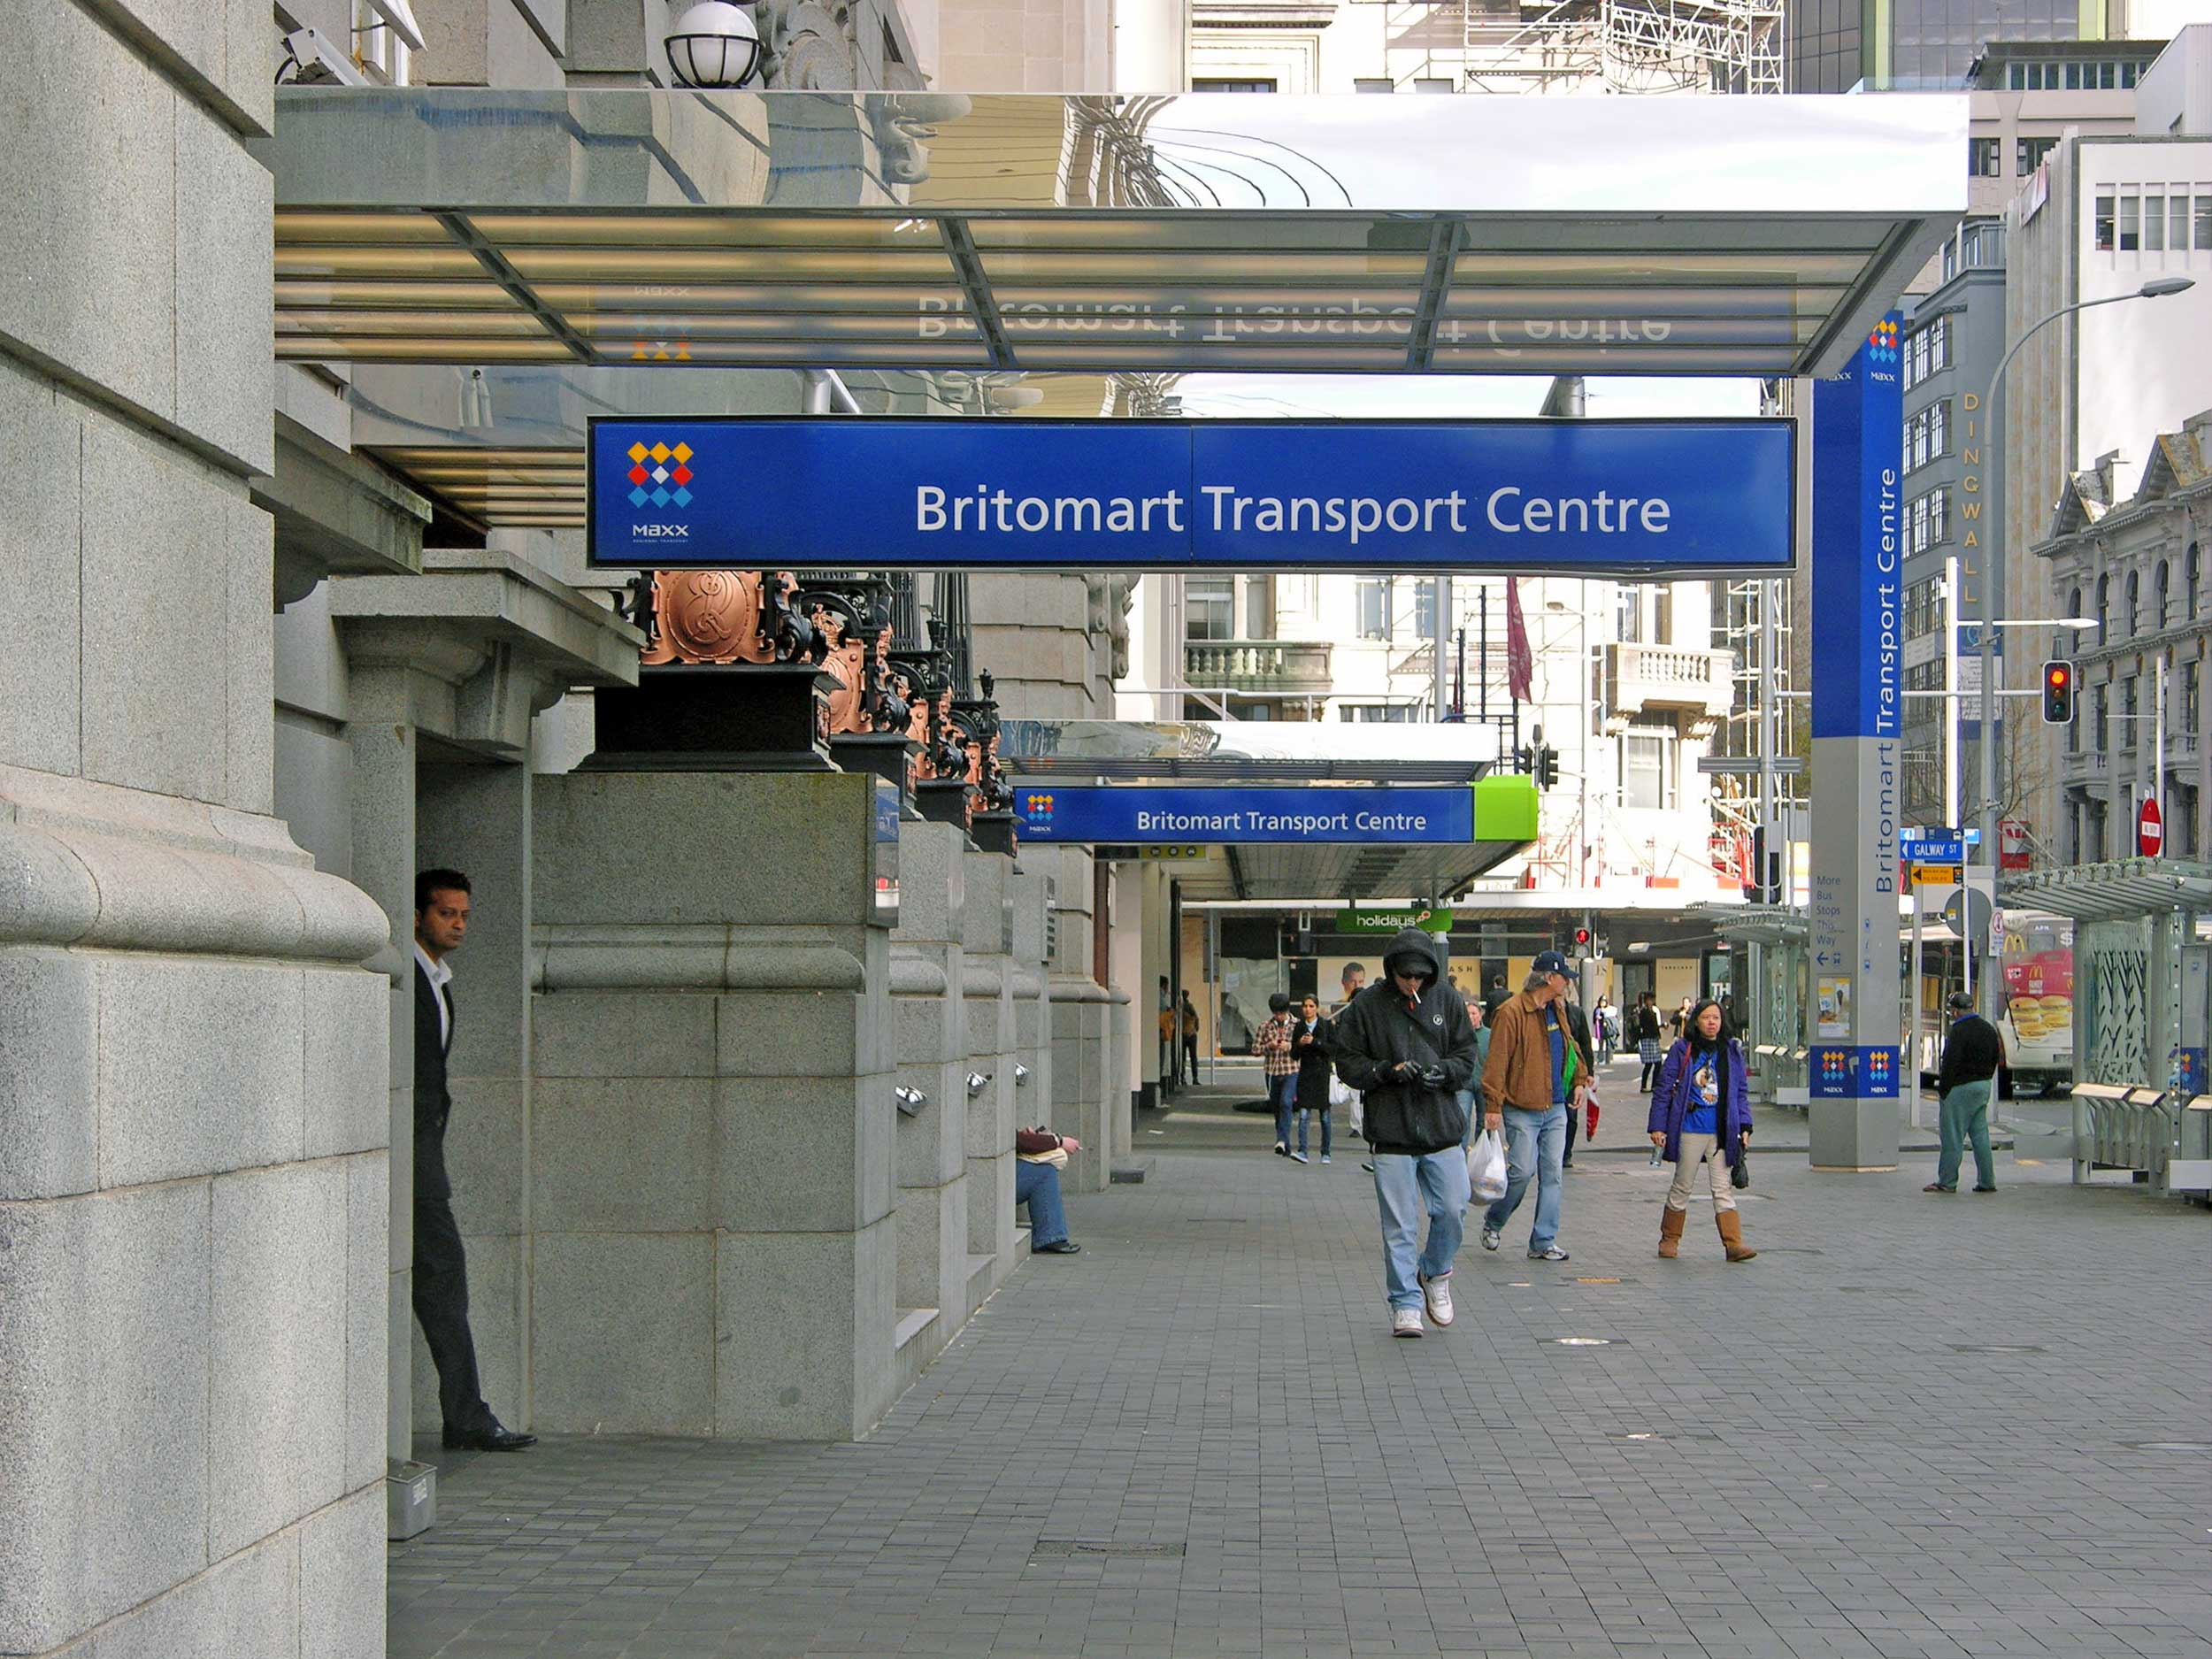 Britomart_transport_centre_Lower_Queen_Street_Auckland.jpeg